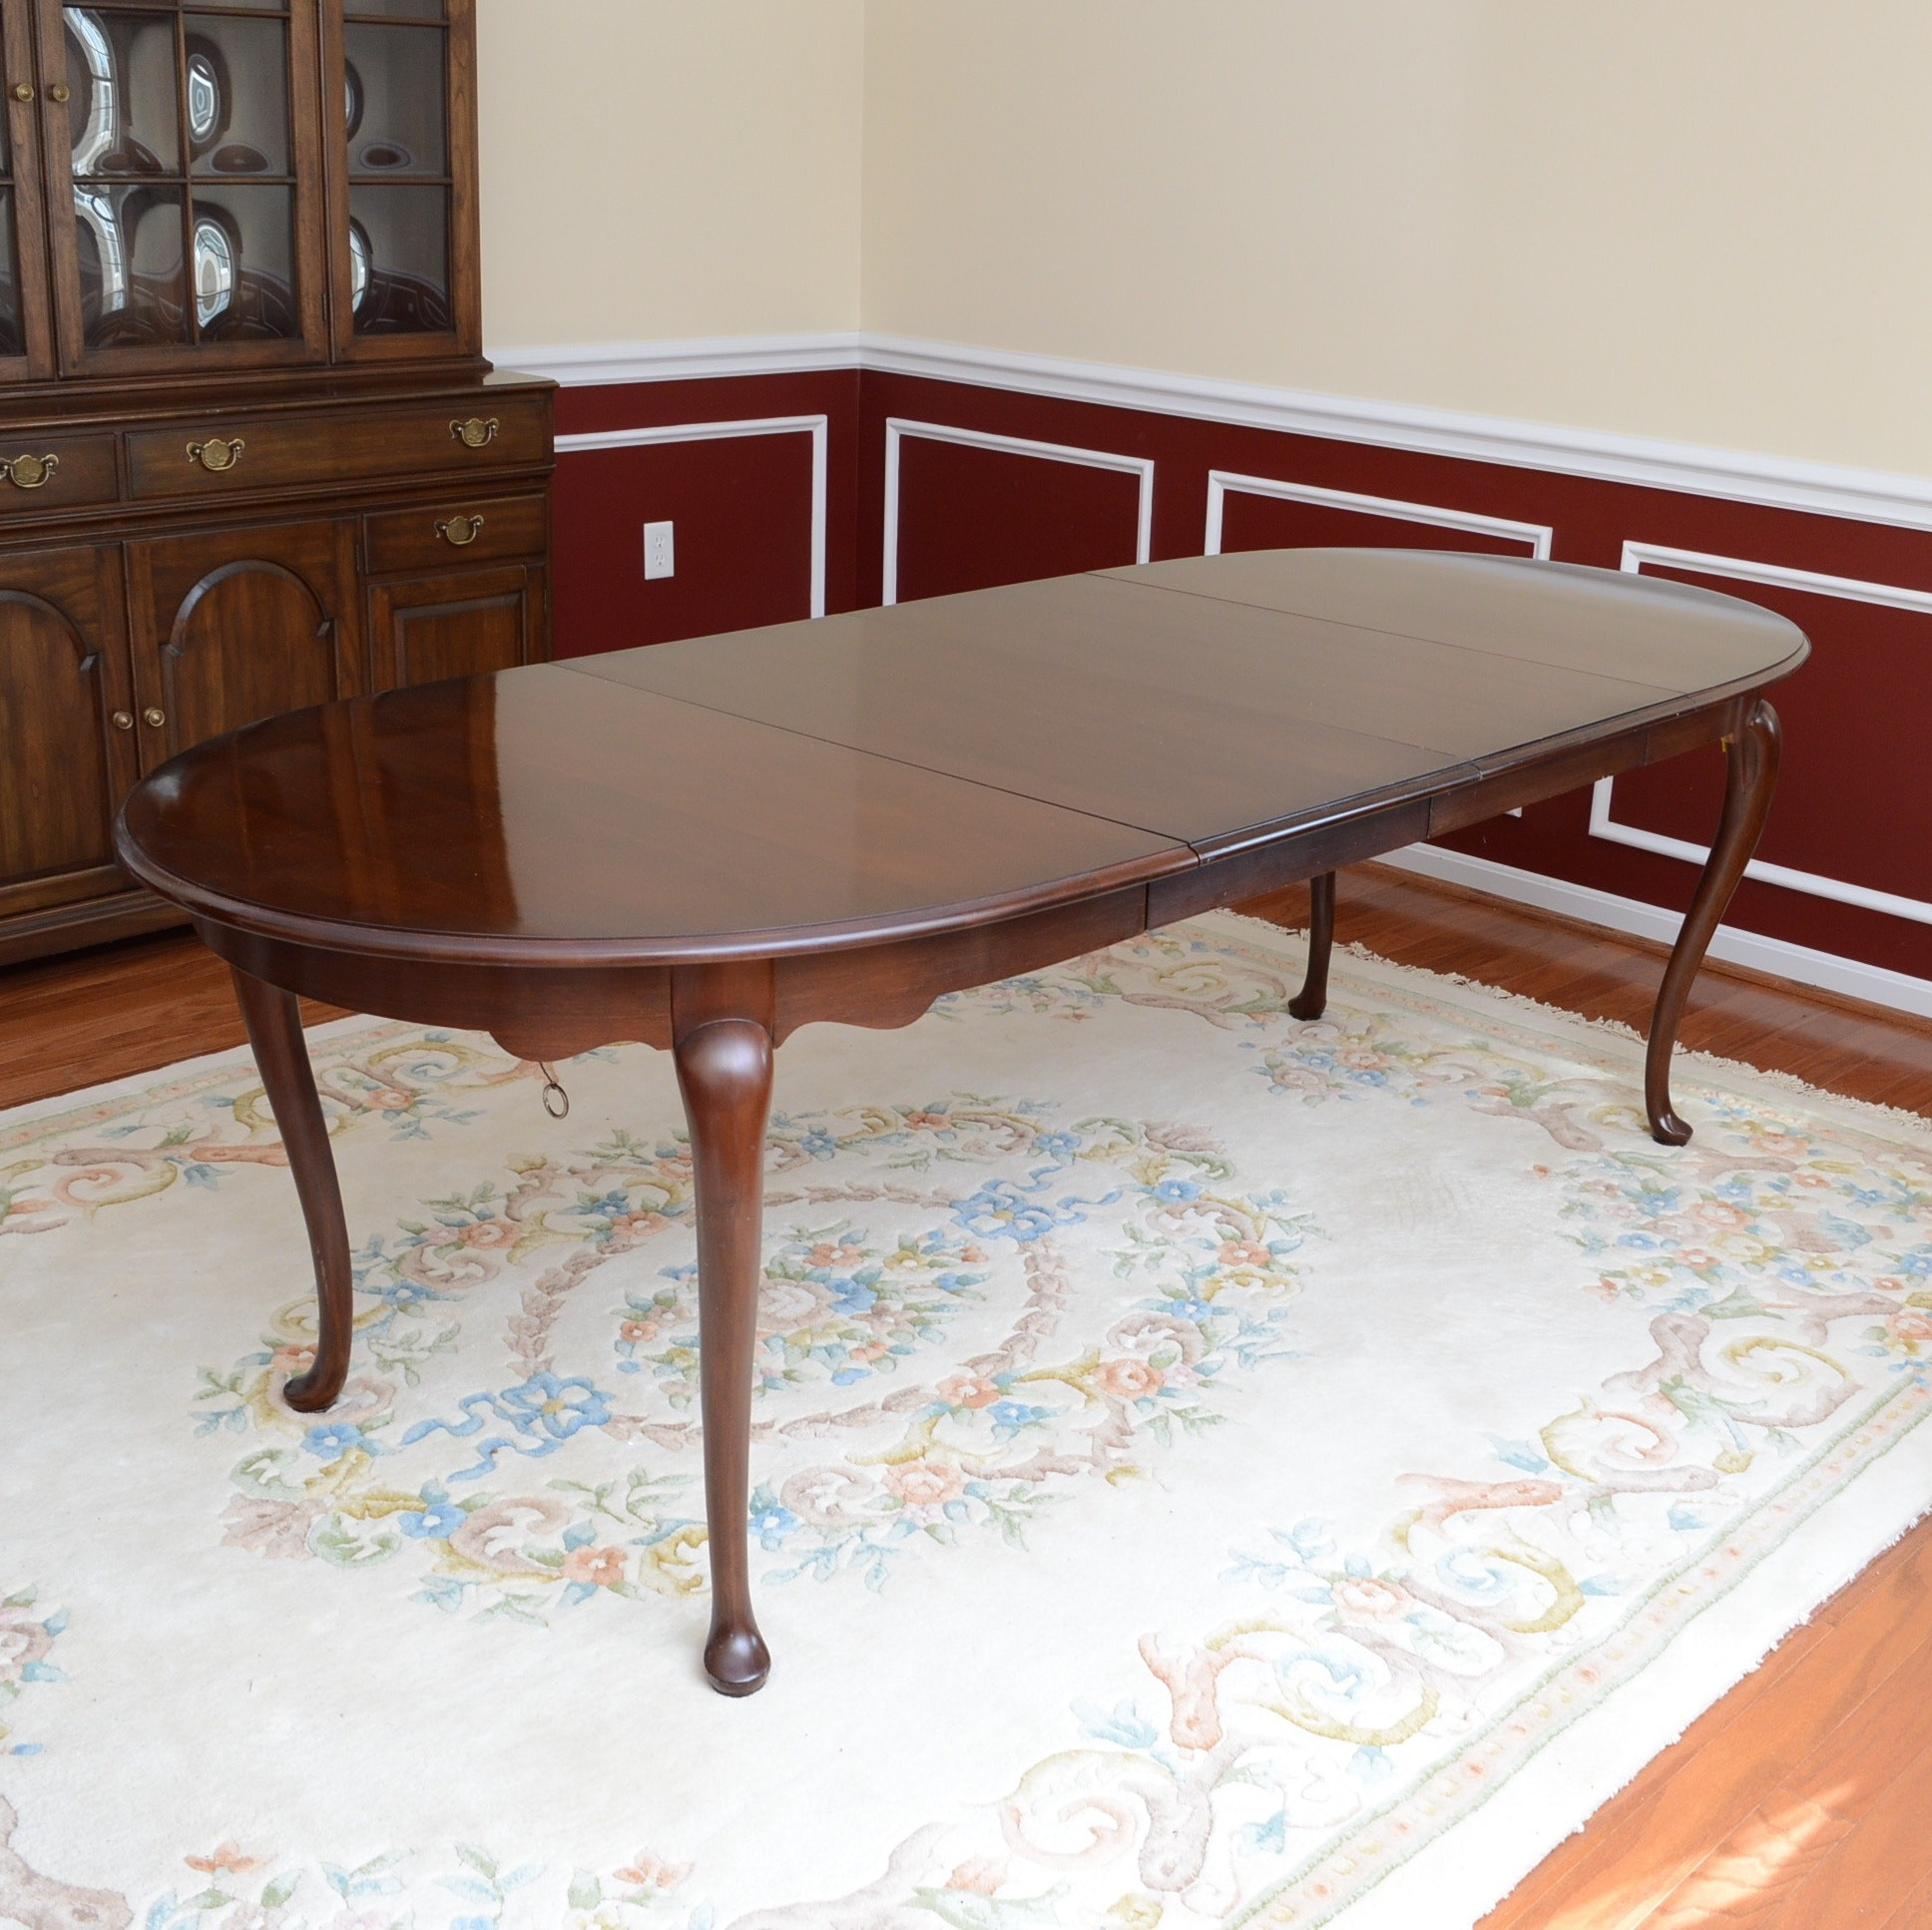 Queen Anne-Style Extension Table by Monitor Furniture Company